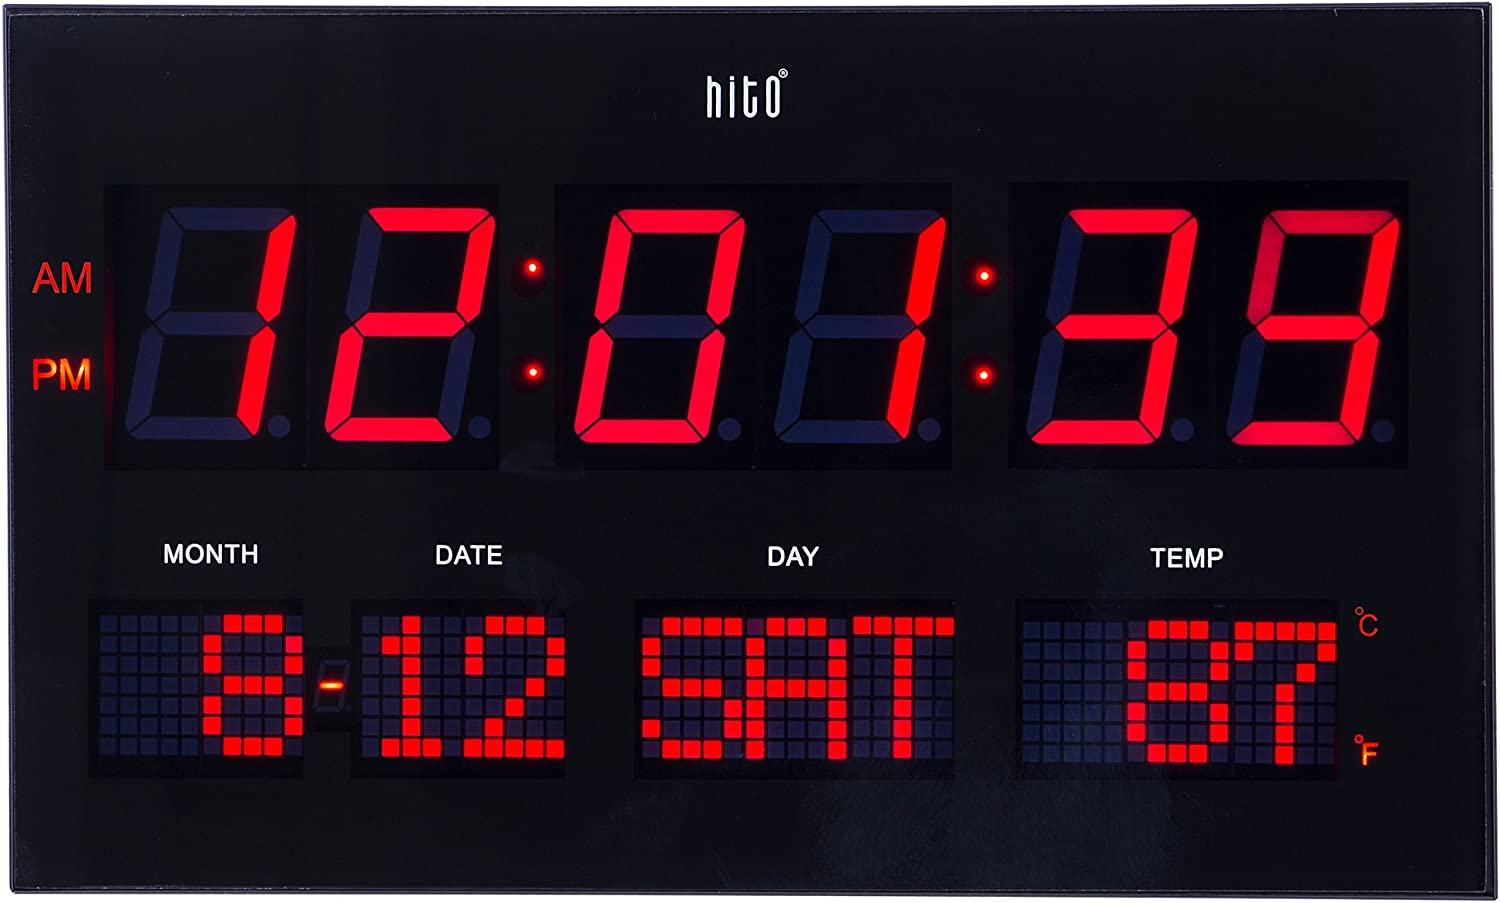 """Hito 14.2"""" Large Oversized LED Wall Clock Seconds Date Day Indoor Temperature Adjustable Brightness Memory Function Adapter Included Decorative for Living Room Office Conference Room Bedroom (Red)"""